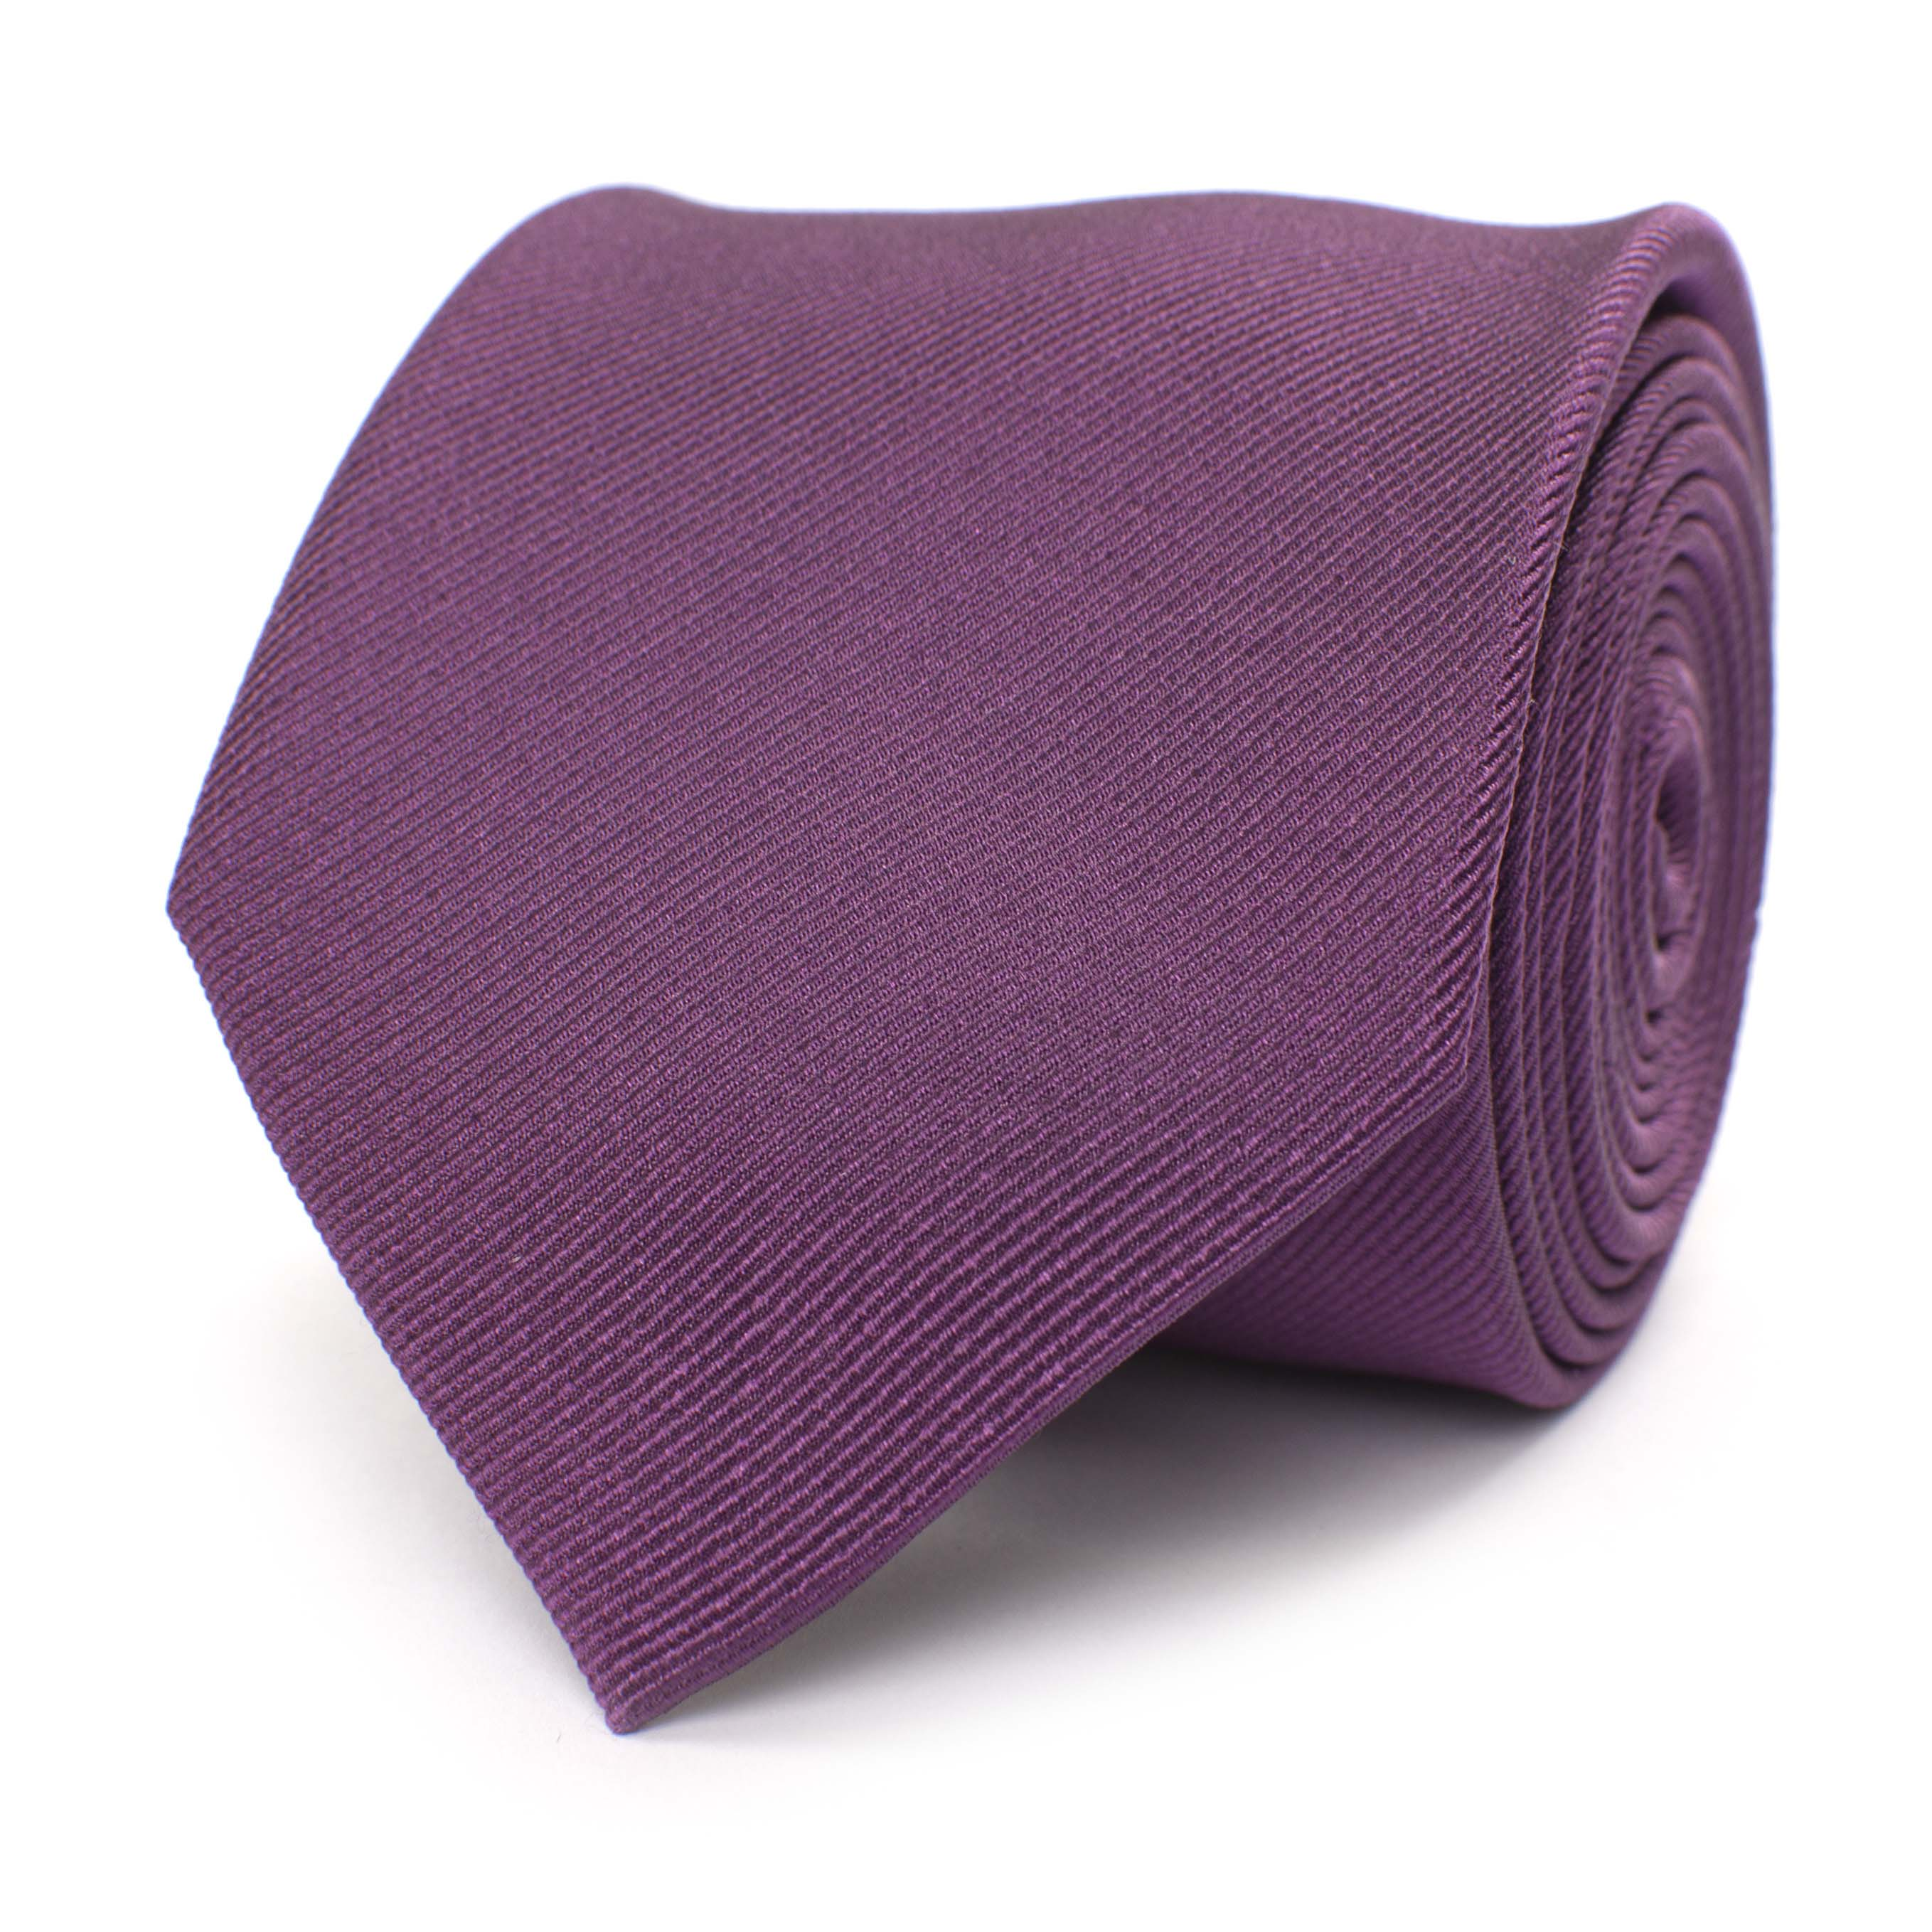 Tie classic ribbed